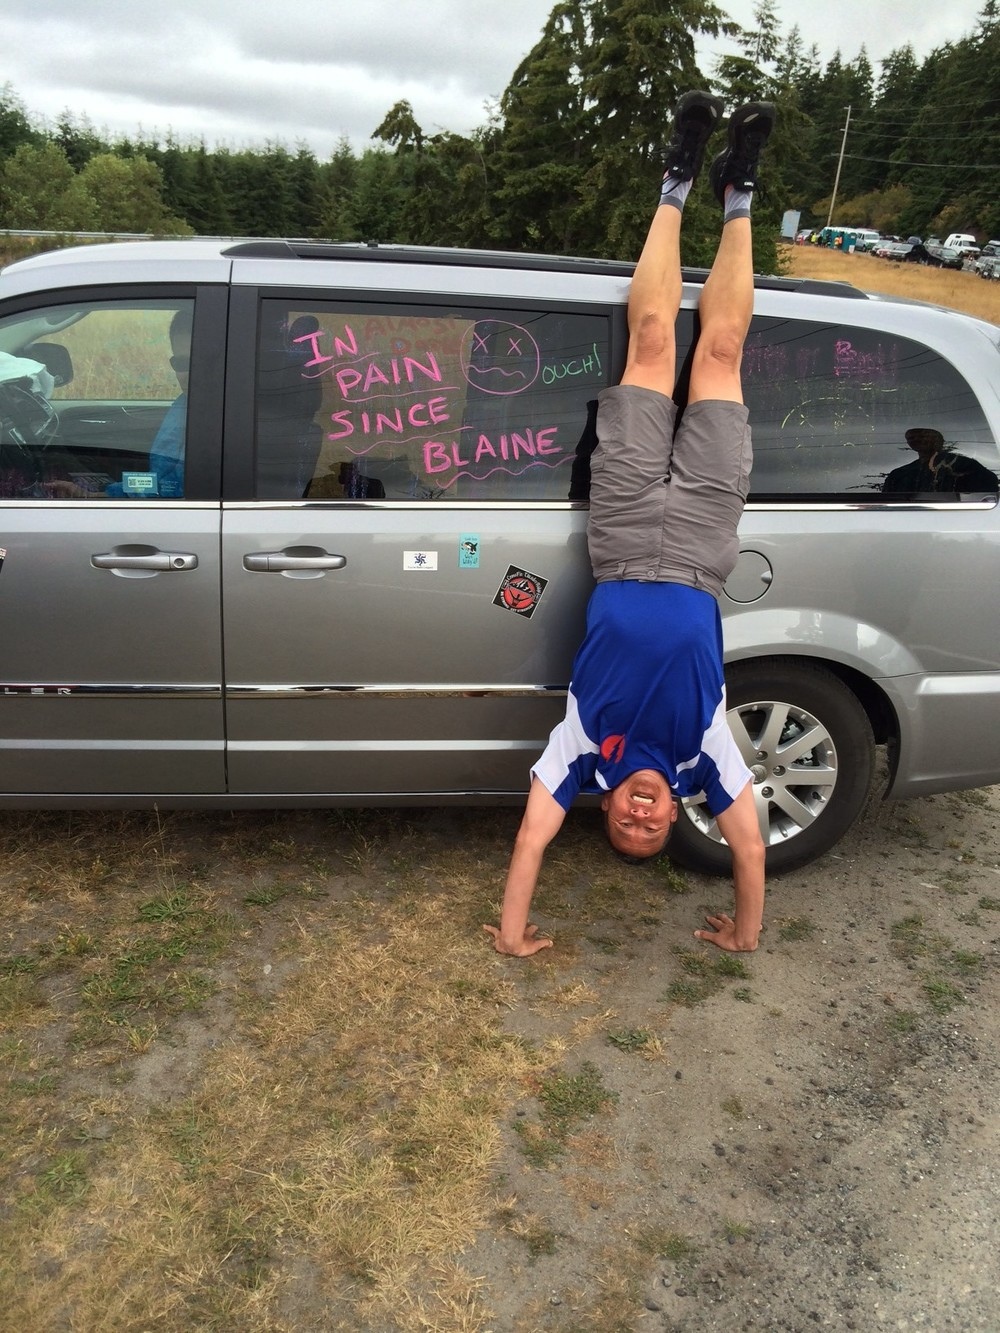 Dave P. with the mandatory handstand picture :)